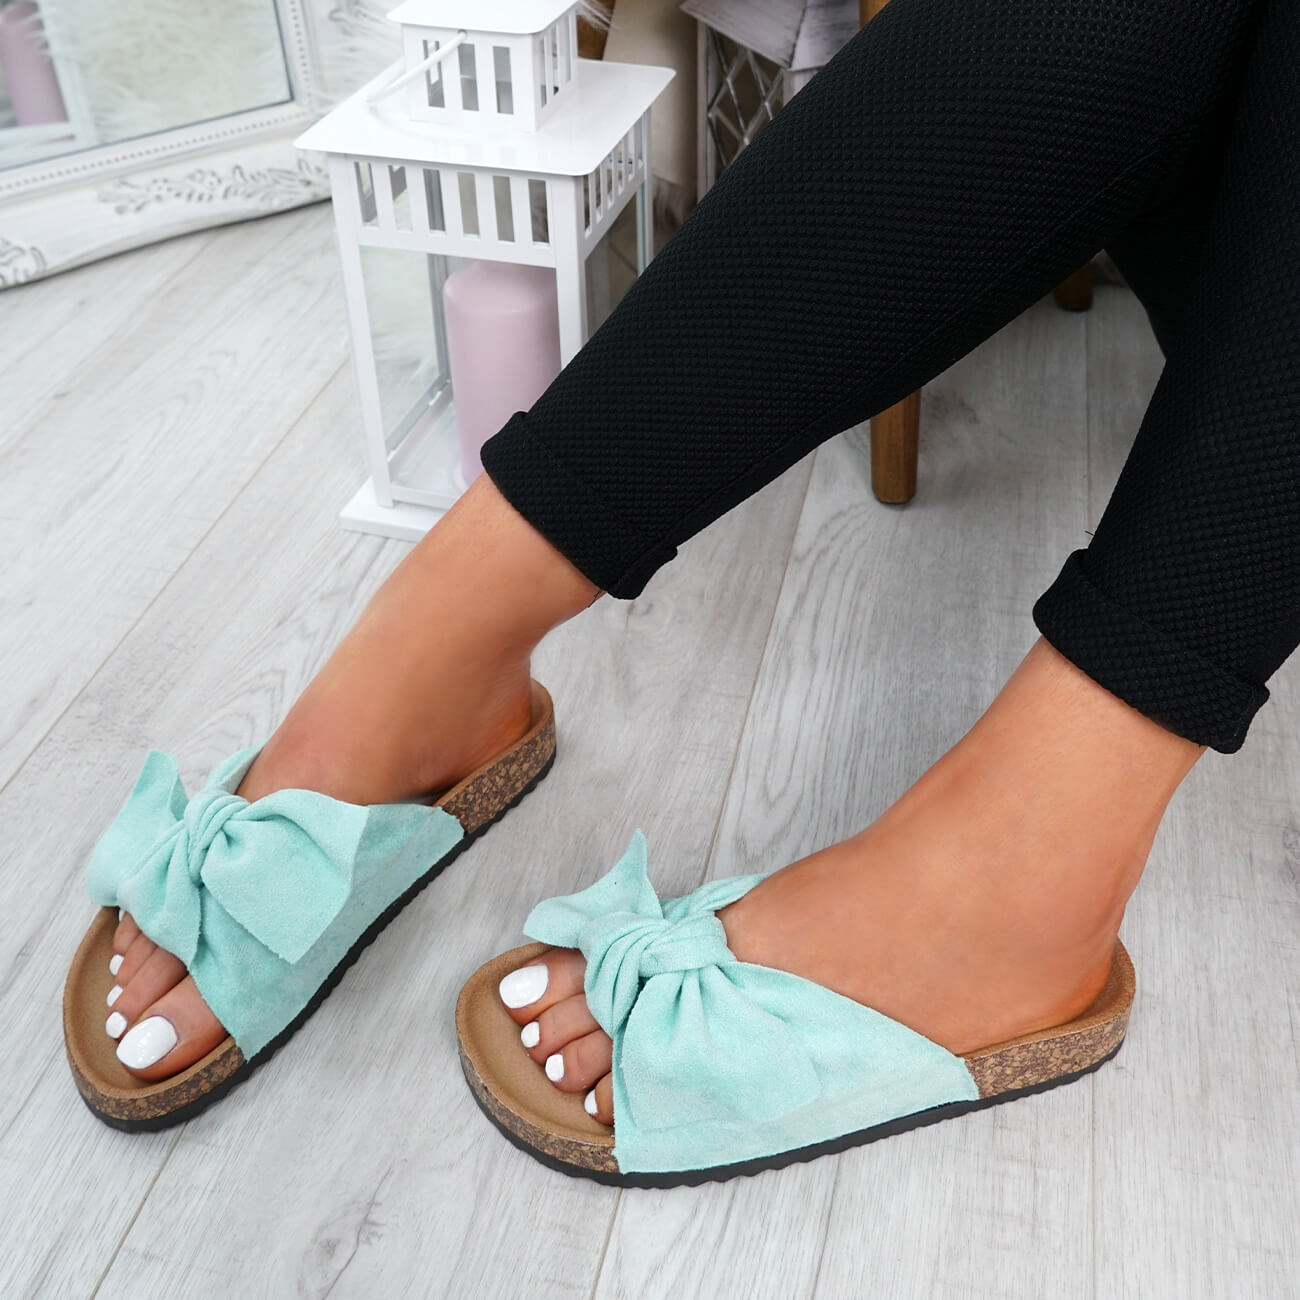 WOMENS-LADIES-SLIP-ON-FLAT-SANDALS-BOW-SLIDERS-SUMMER-CASUAL-SHOES-SIZE thumbnail 25